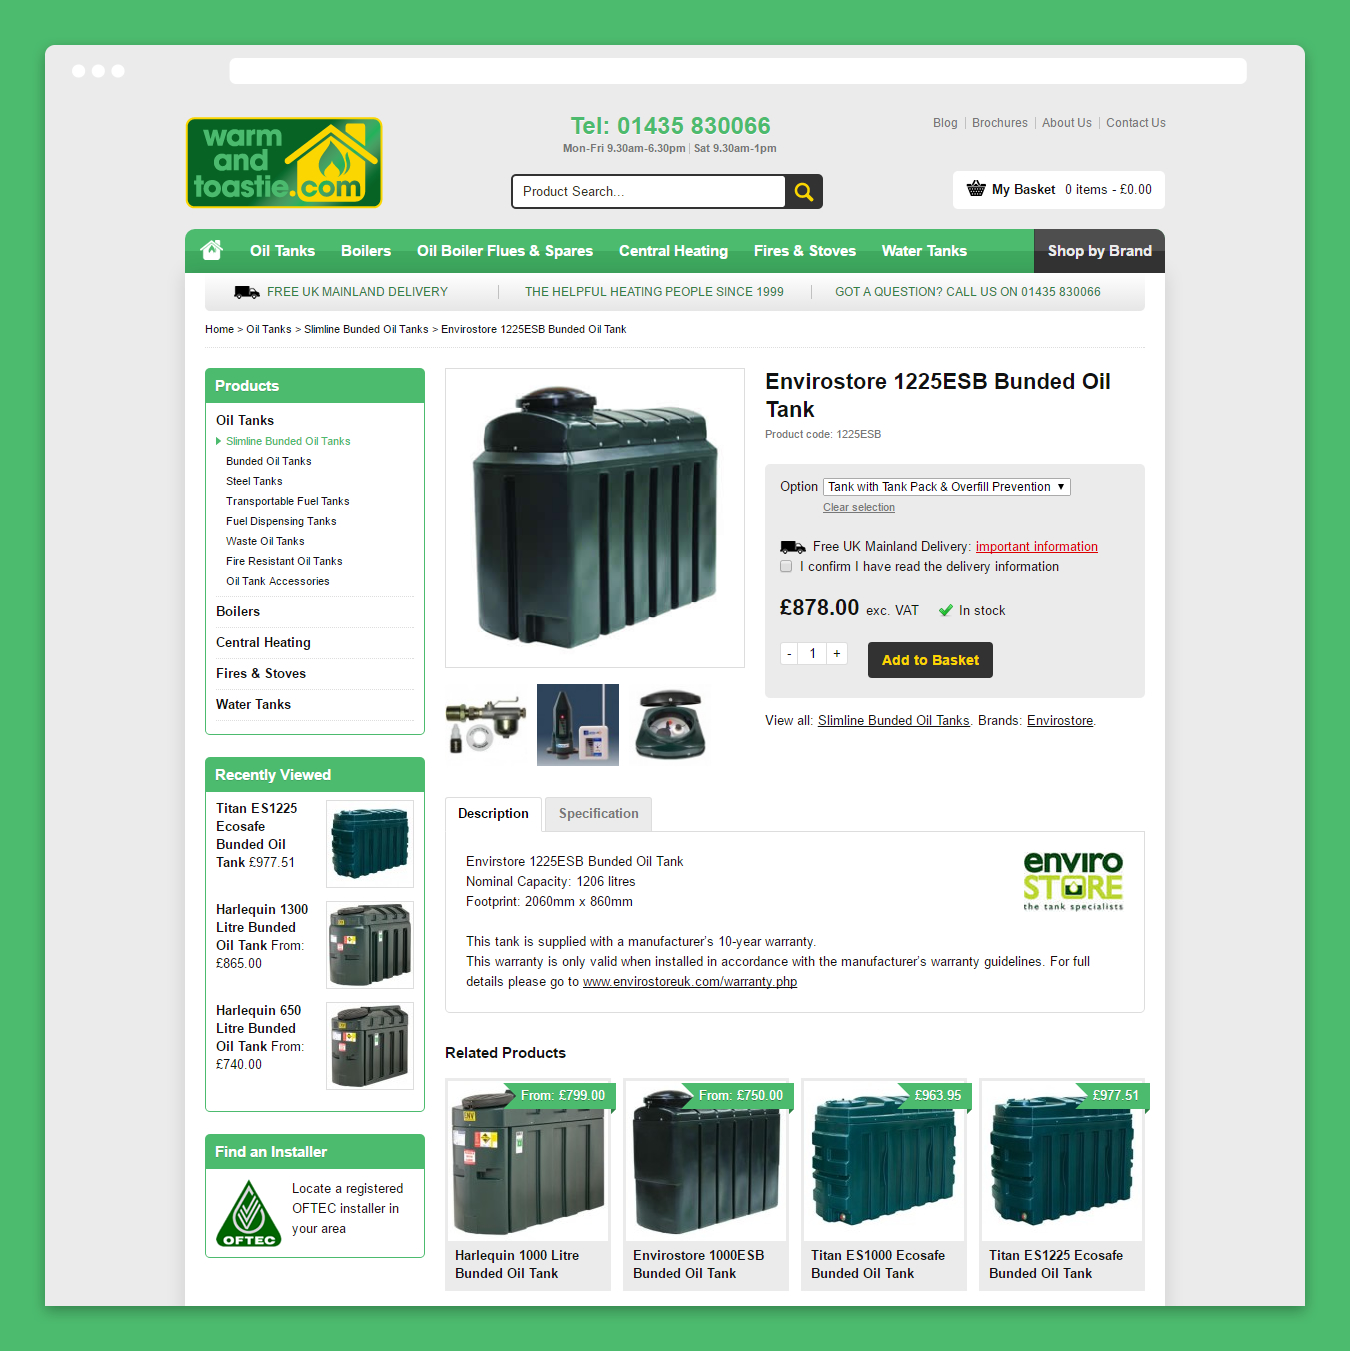 E-Commerce product page design on the Warm and Toastie website